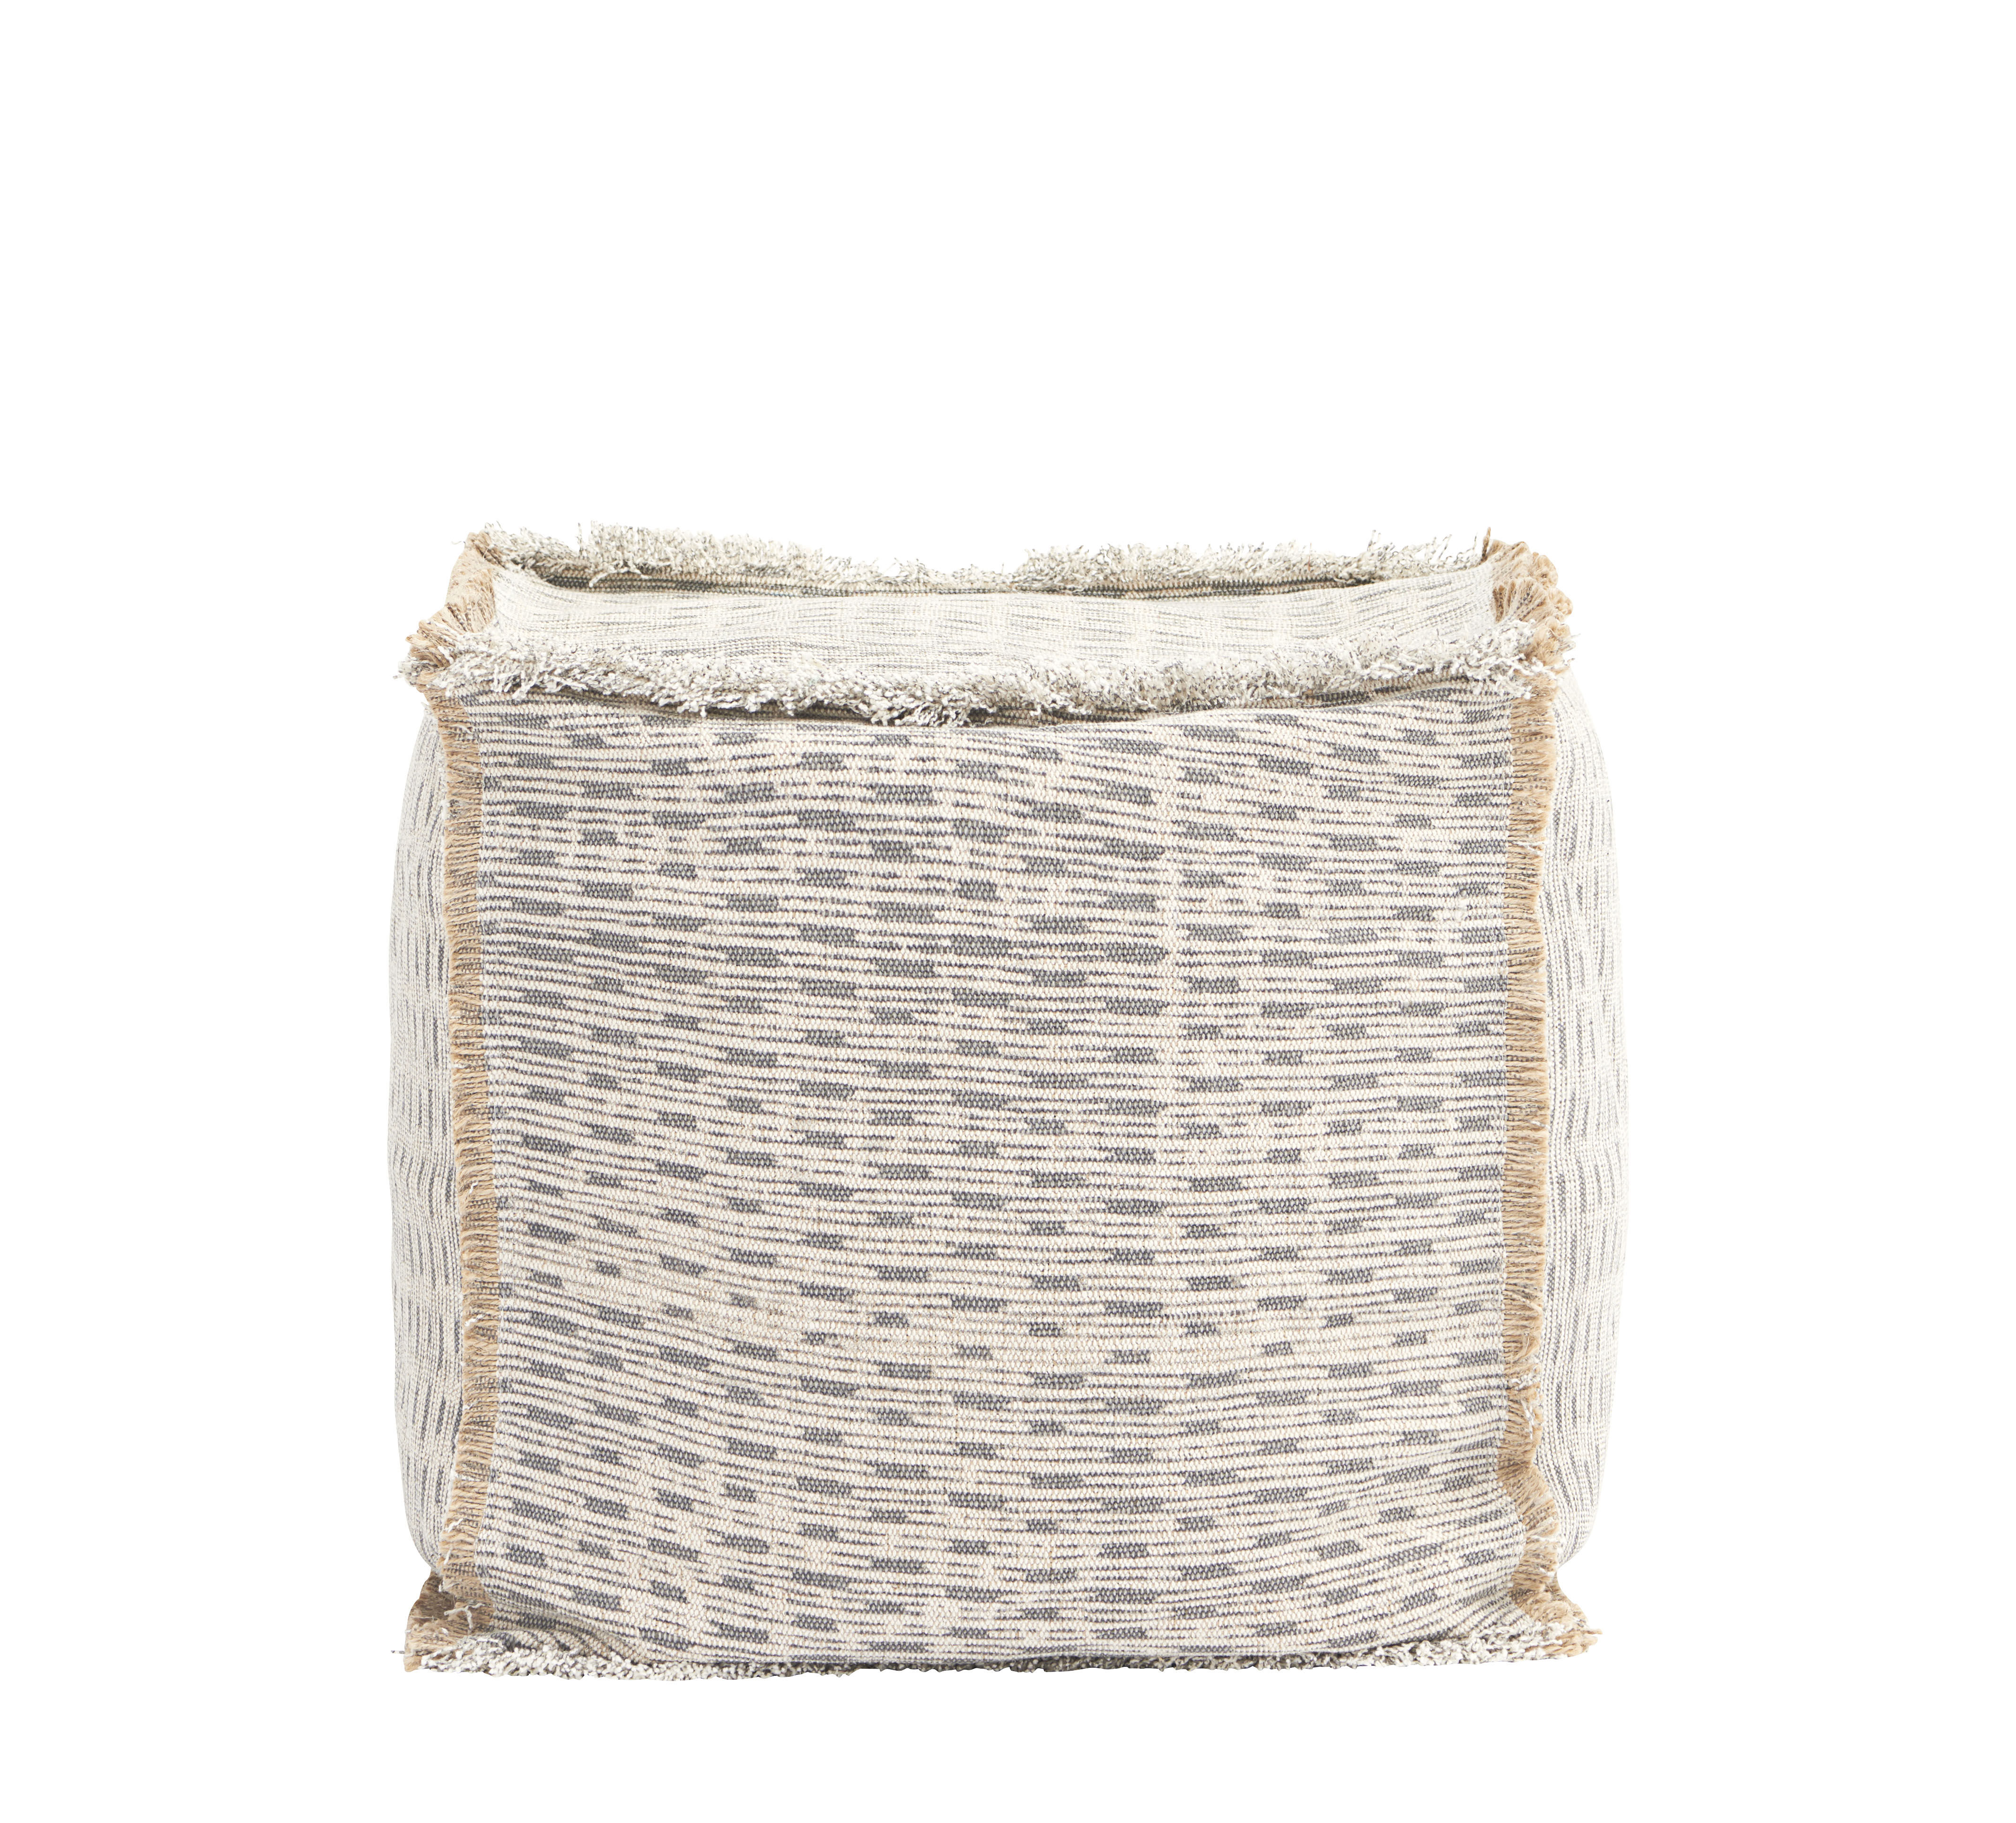 Furniture - Poufs & Floor Cushions - Abi Pouf - / L 40 x H 40 cm by House Doctor - Ivory - Cotton, Hessian